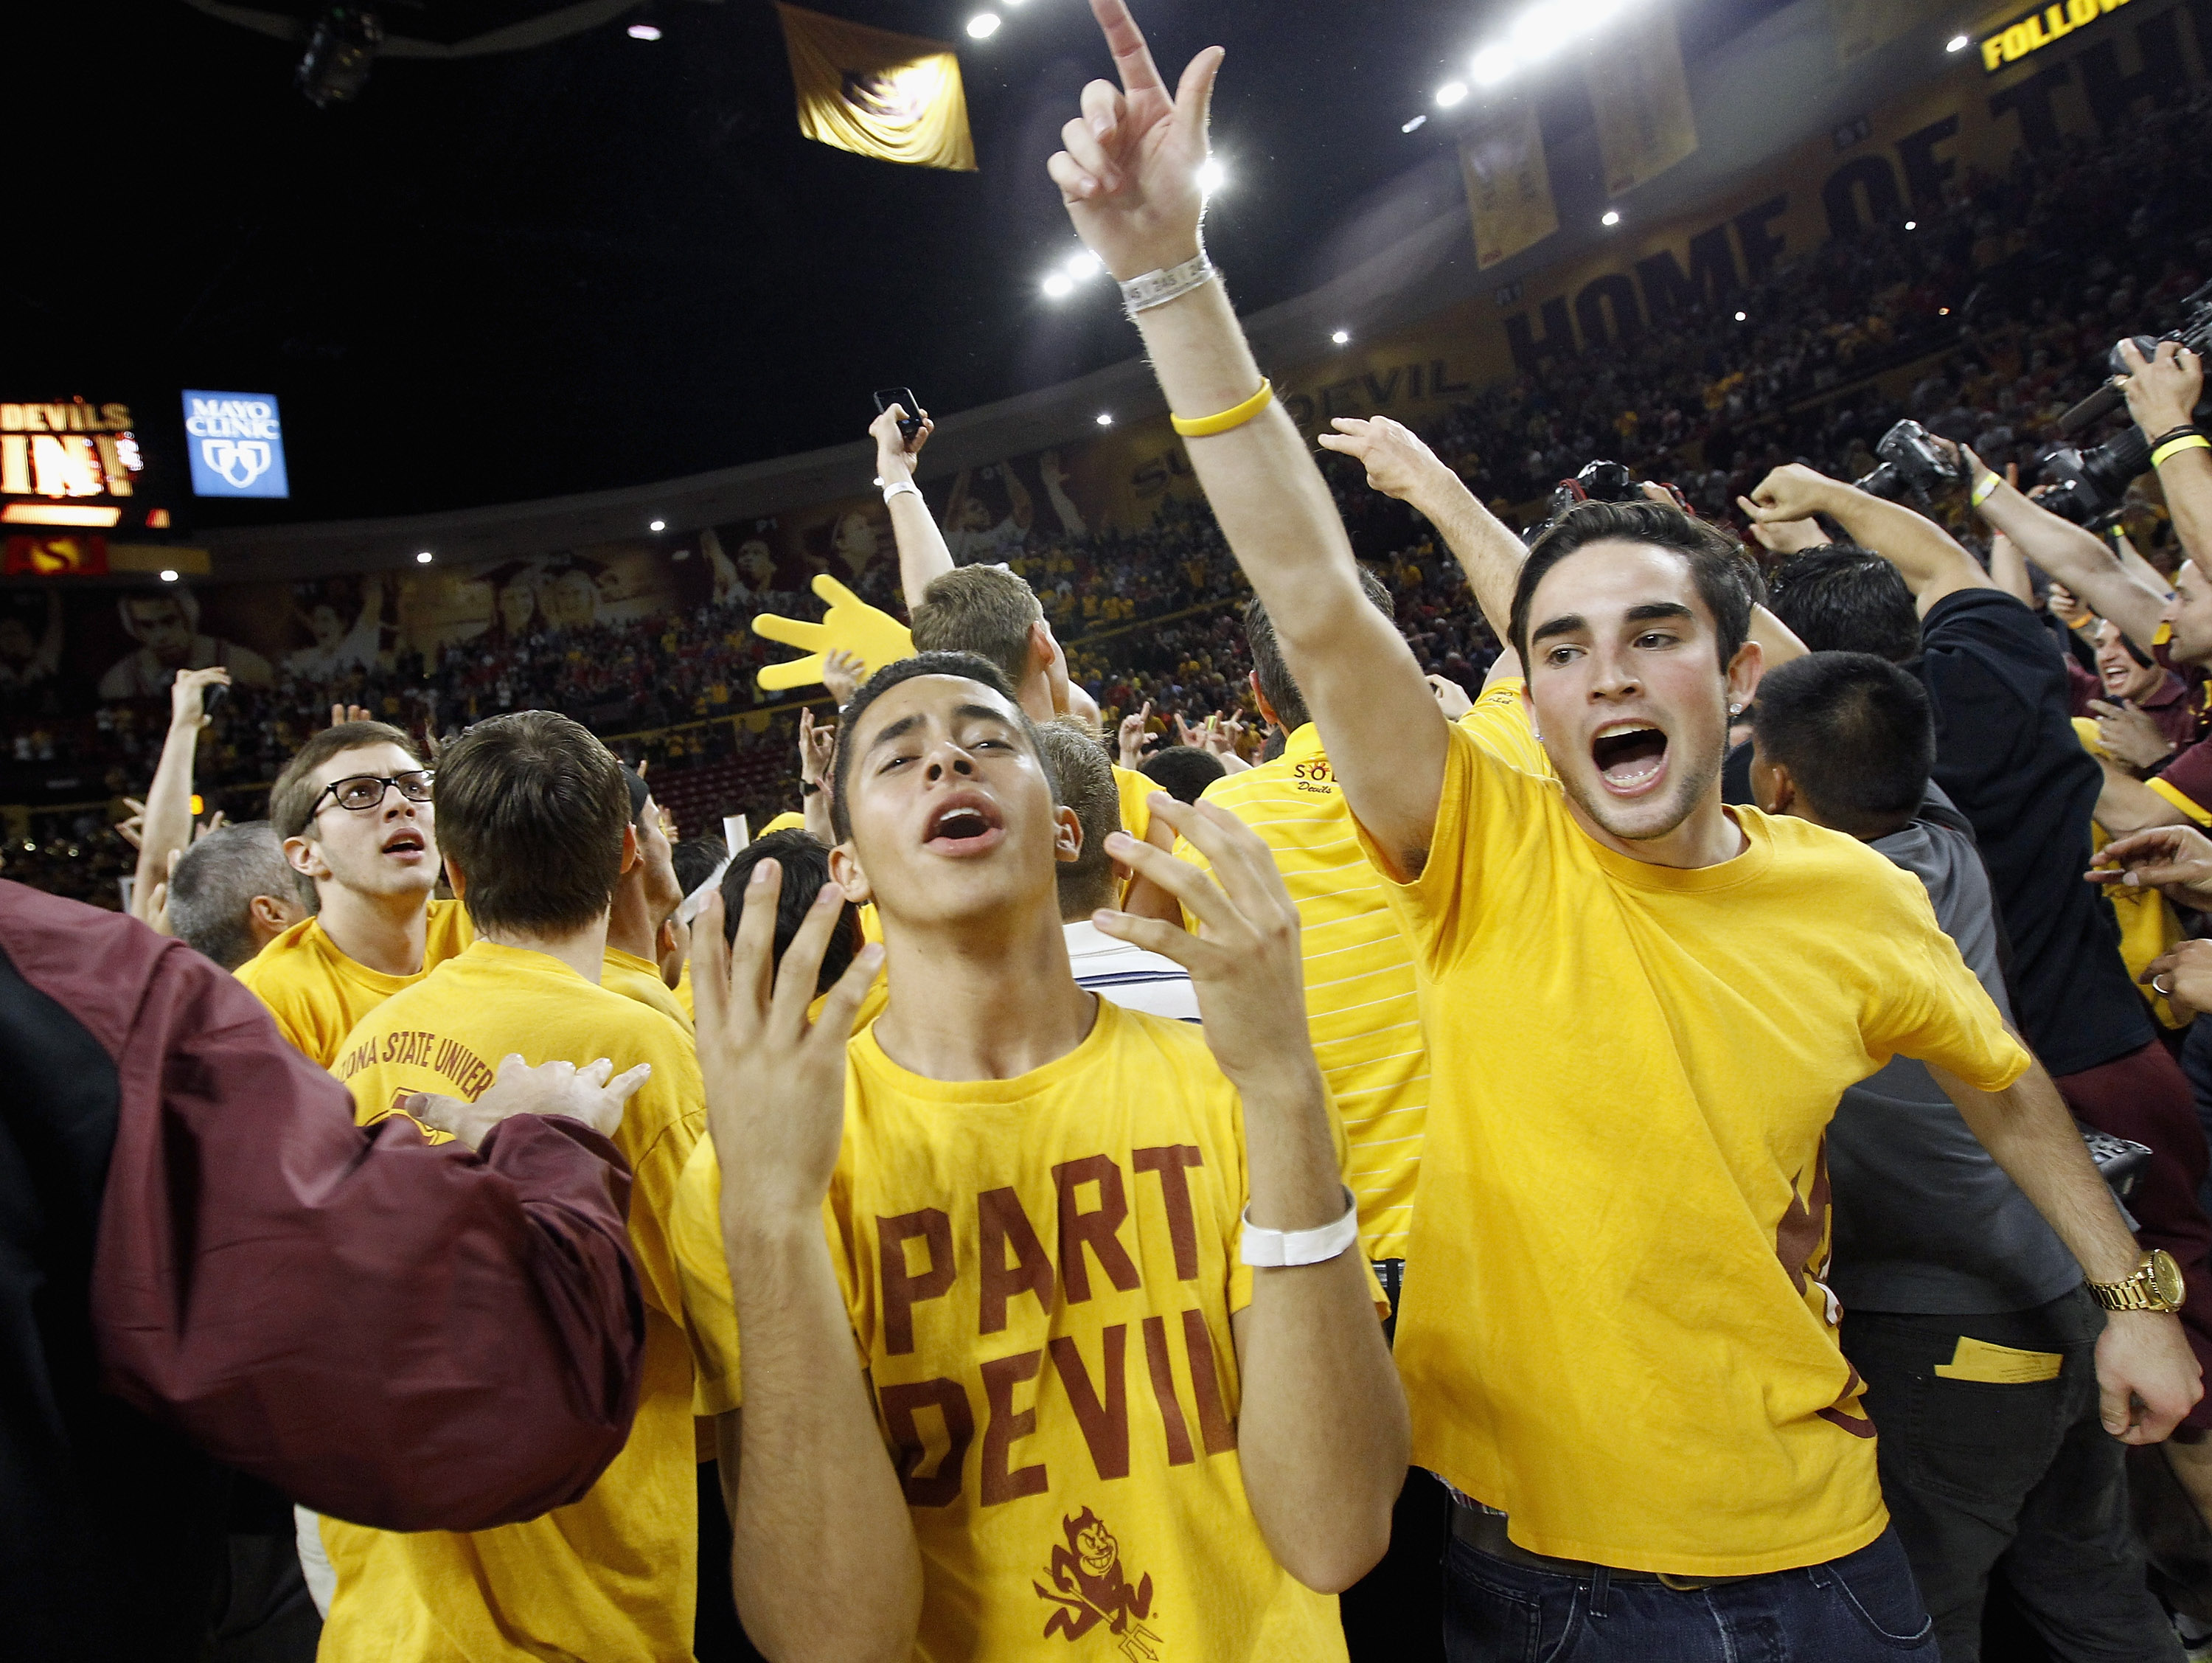 Watch: Arizona State Students Get Fooled into Talking About Team's Tournament Chances